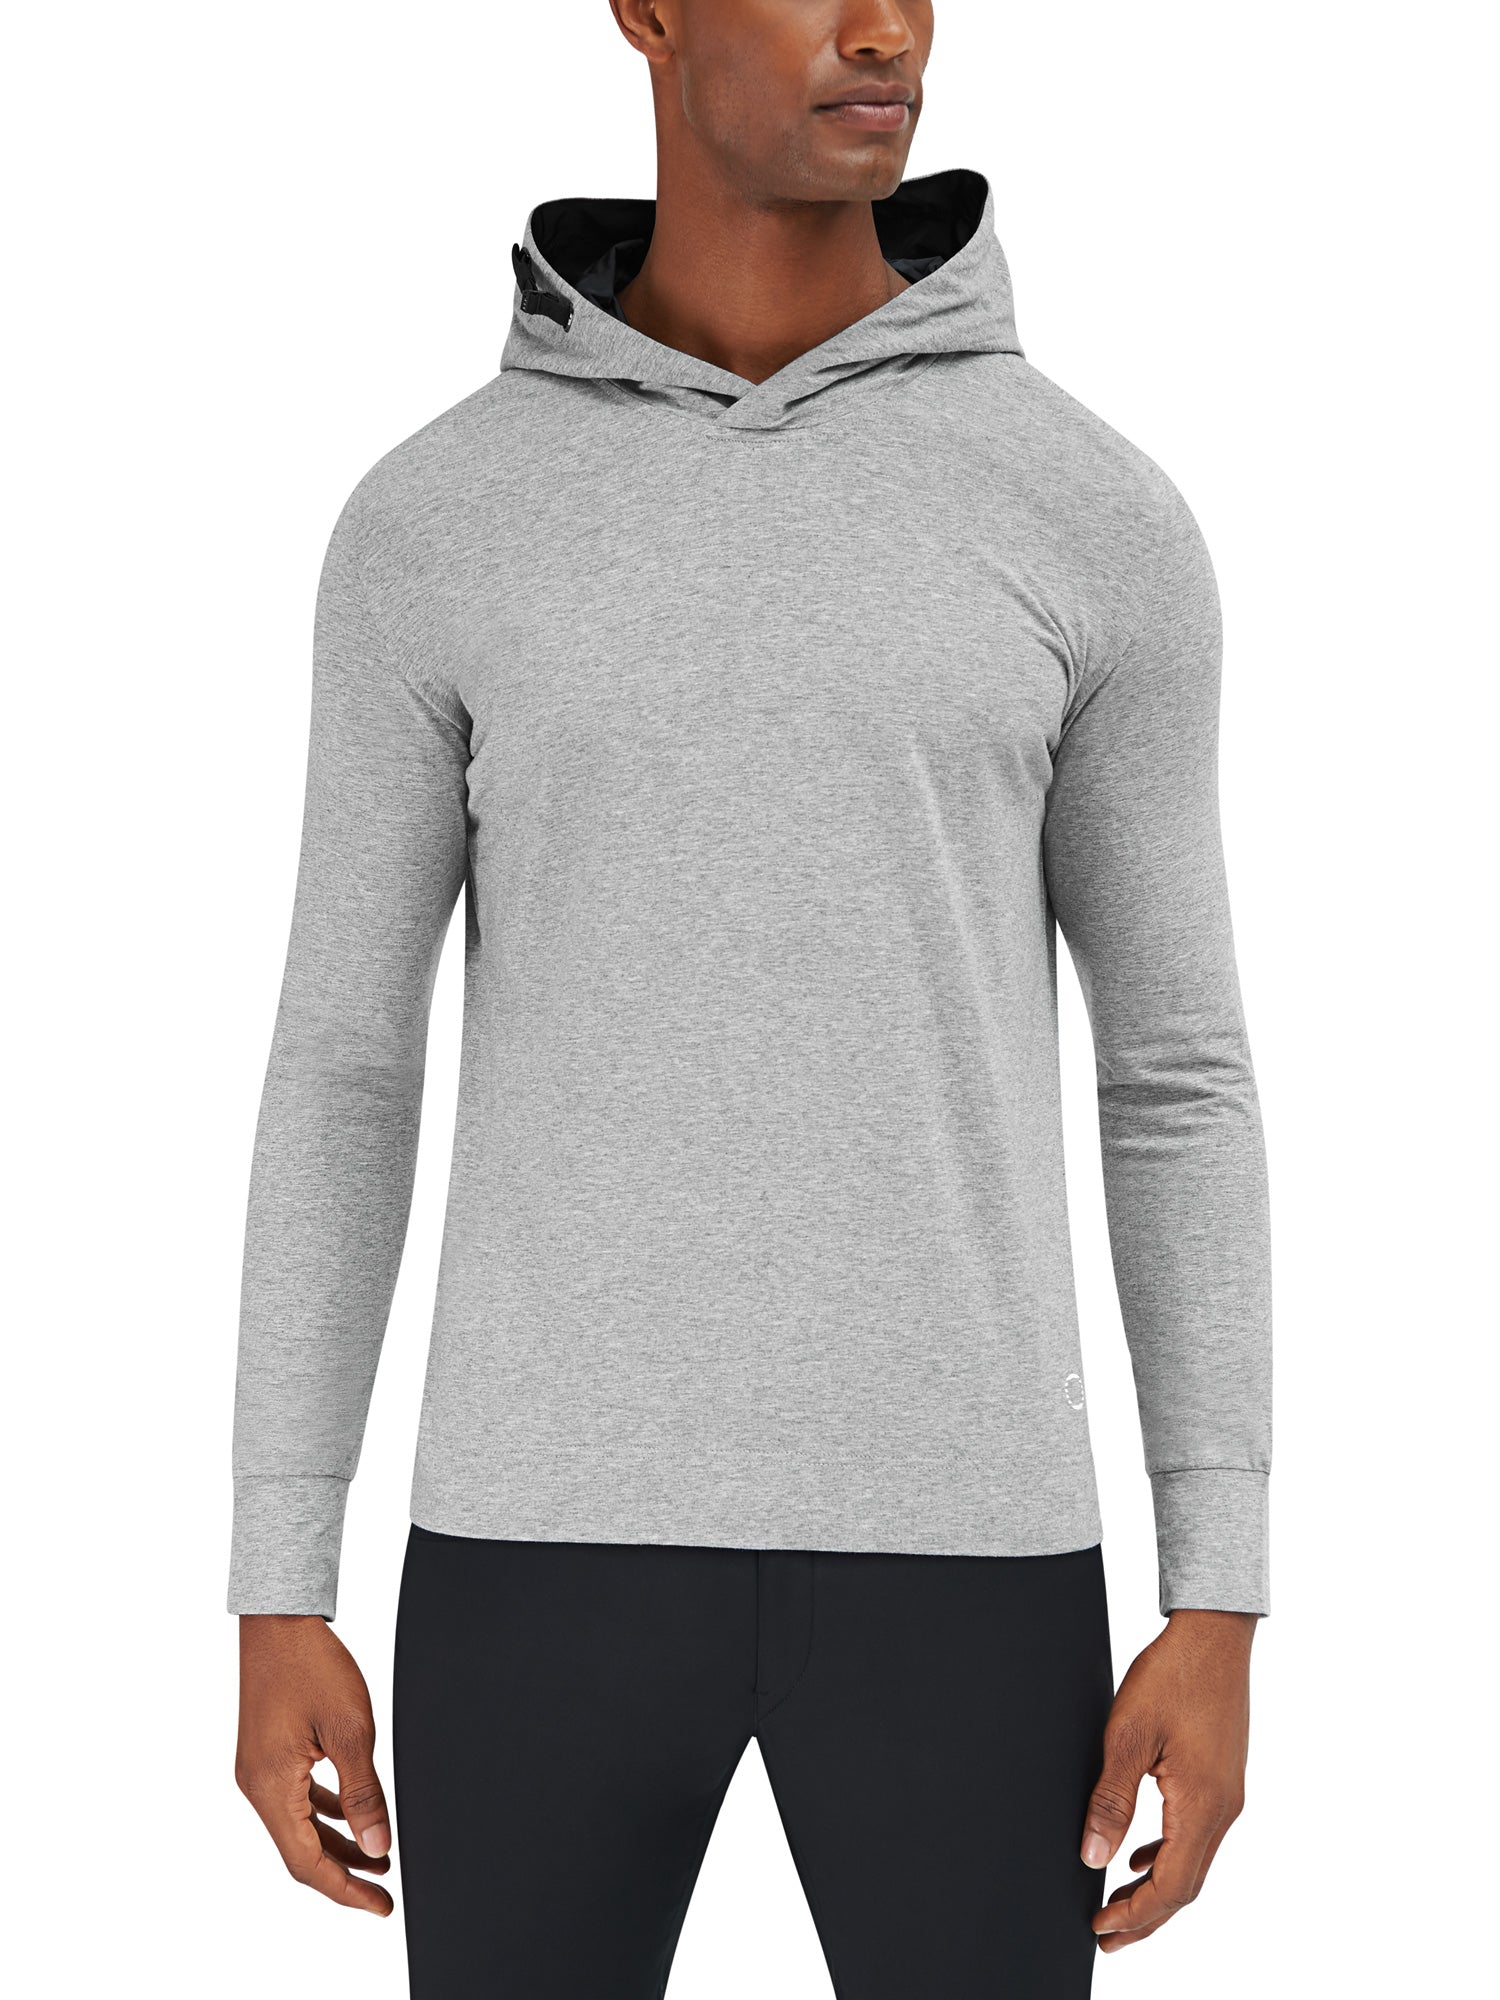 Native Hooded Pullover - Grey Heather